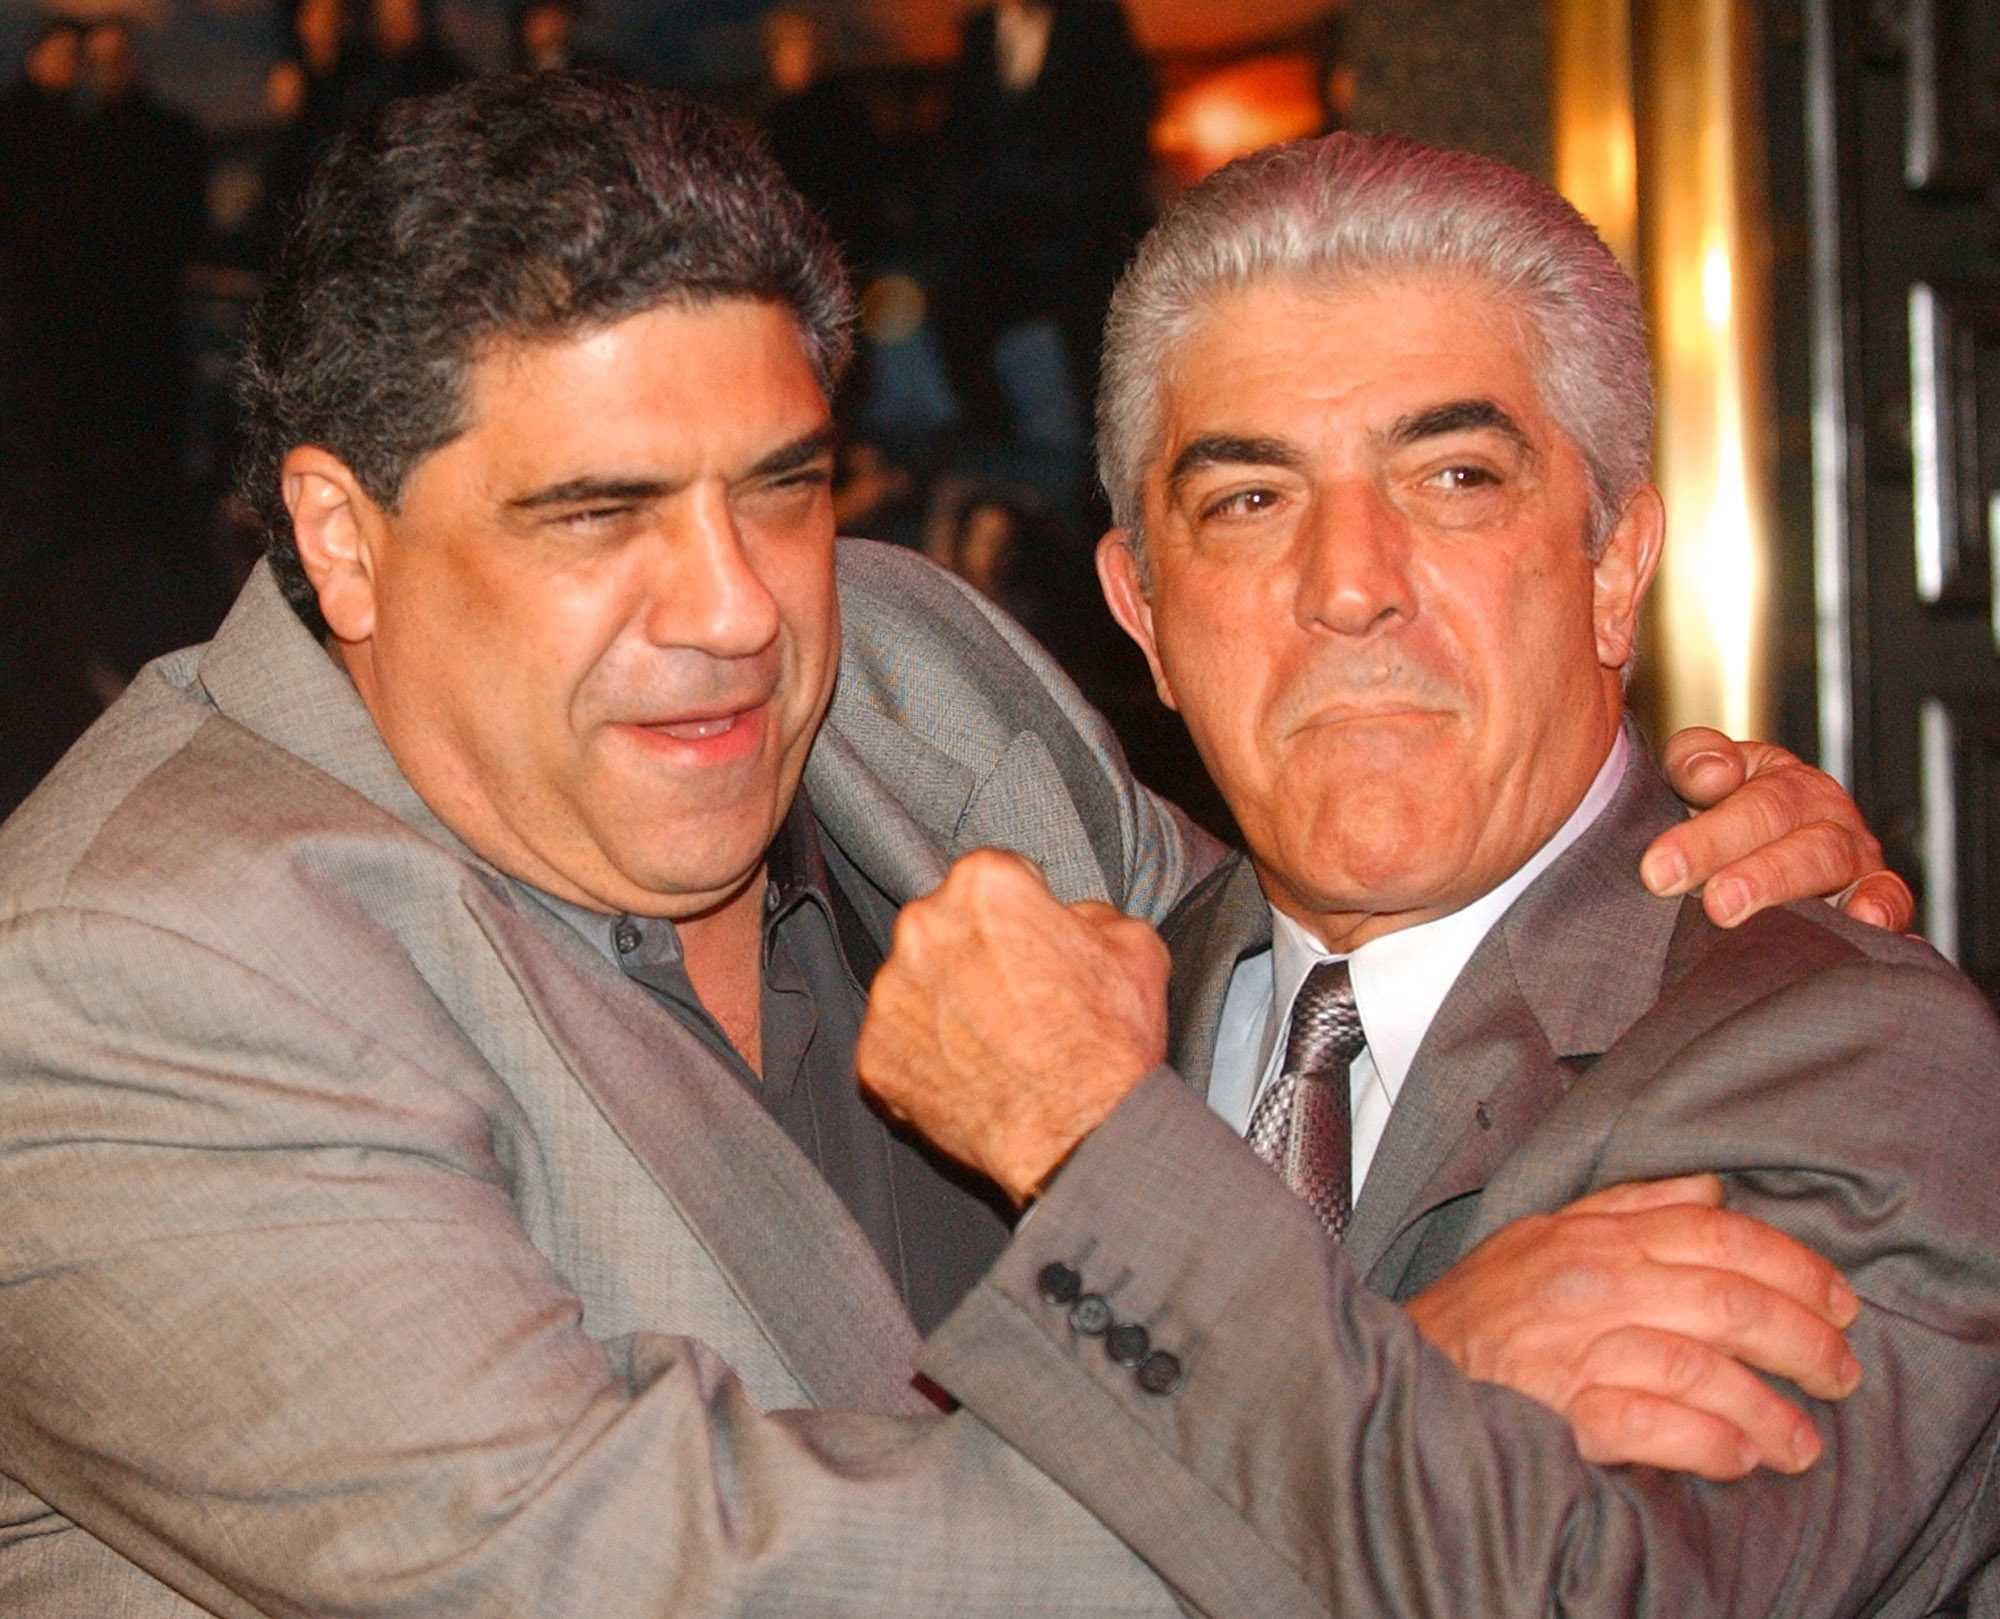 'Sopranos' star Frank Vincent dead at 78